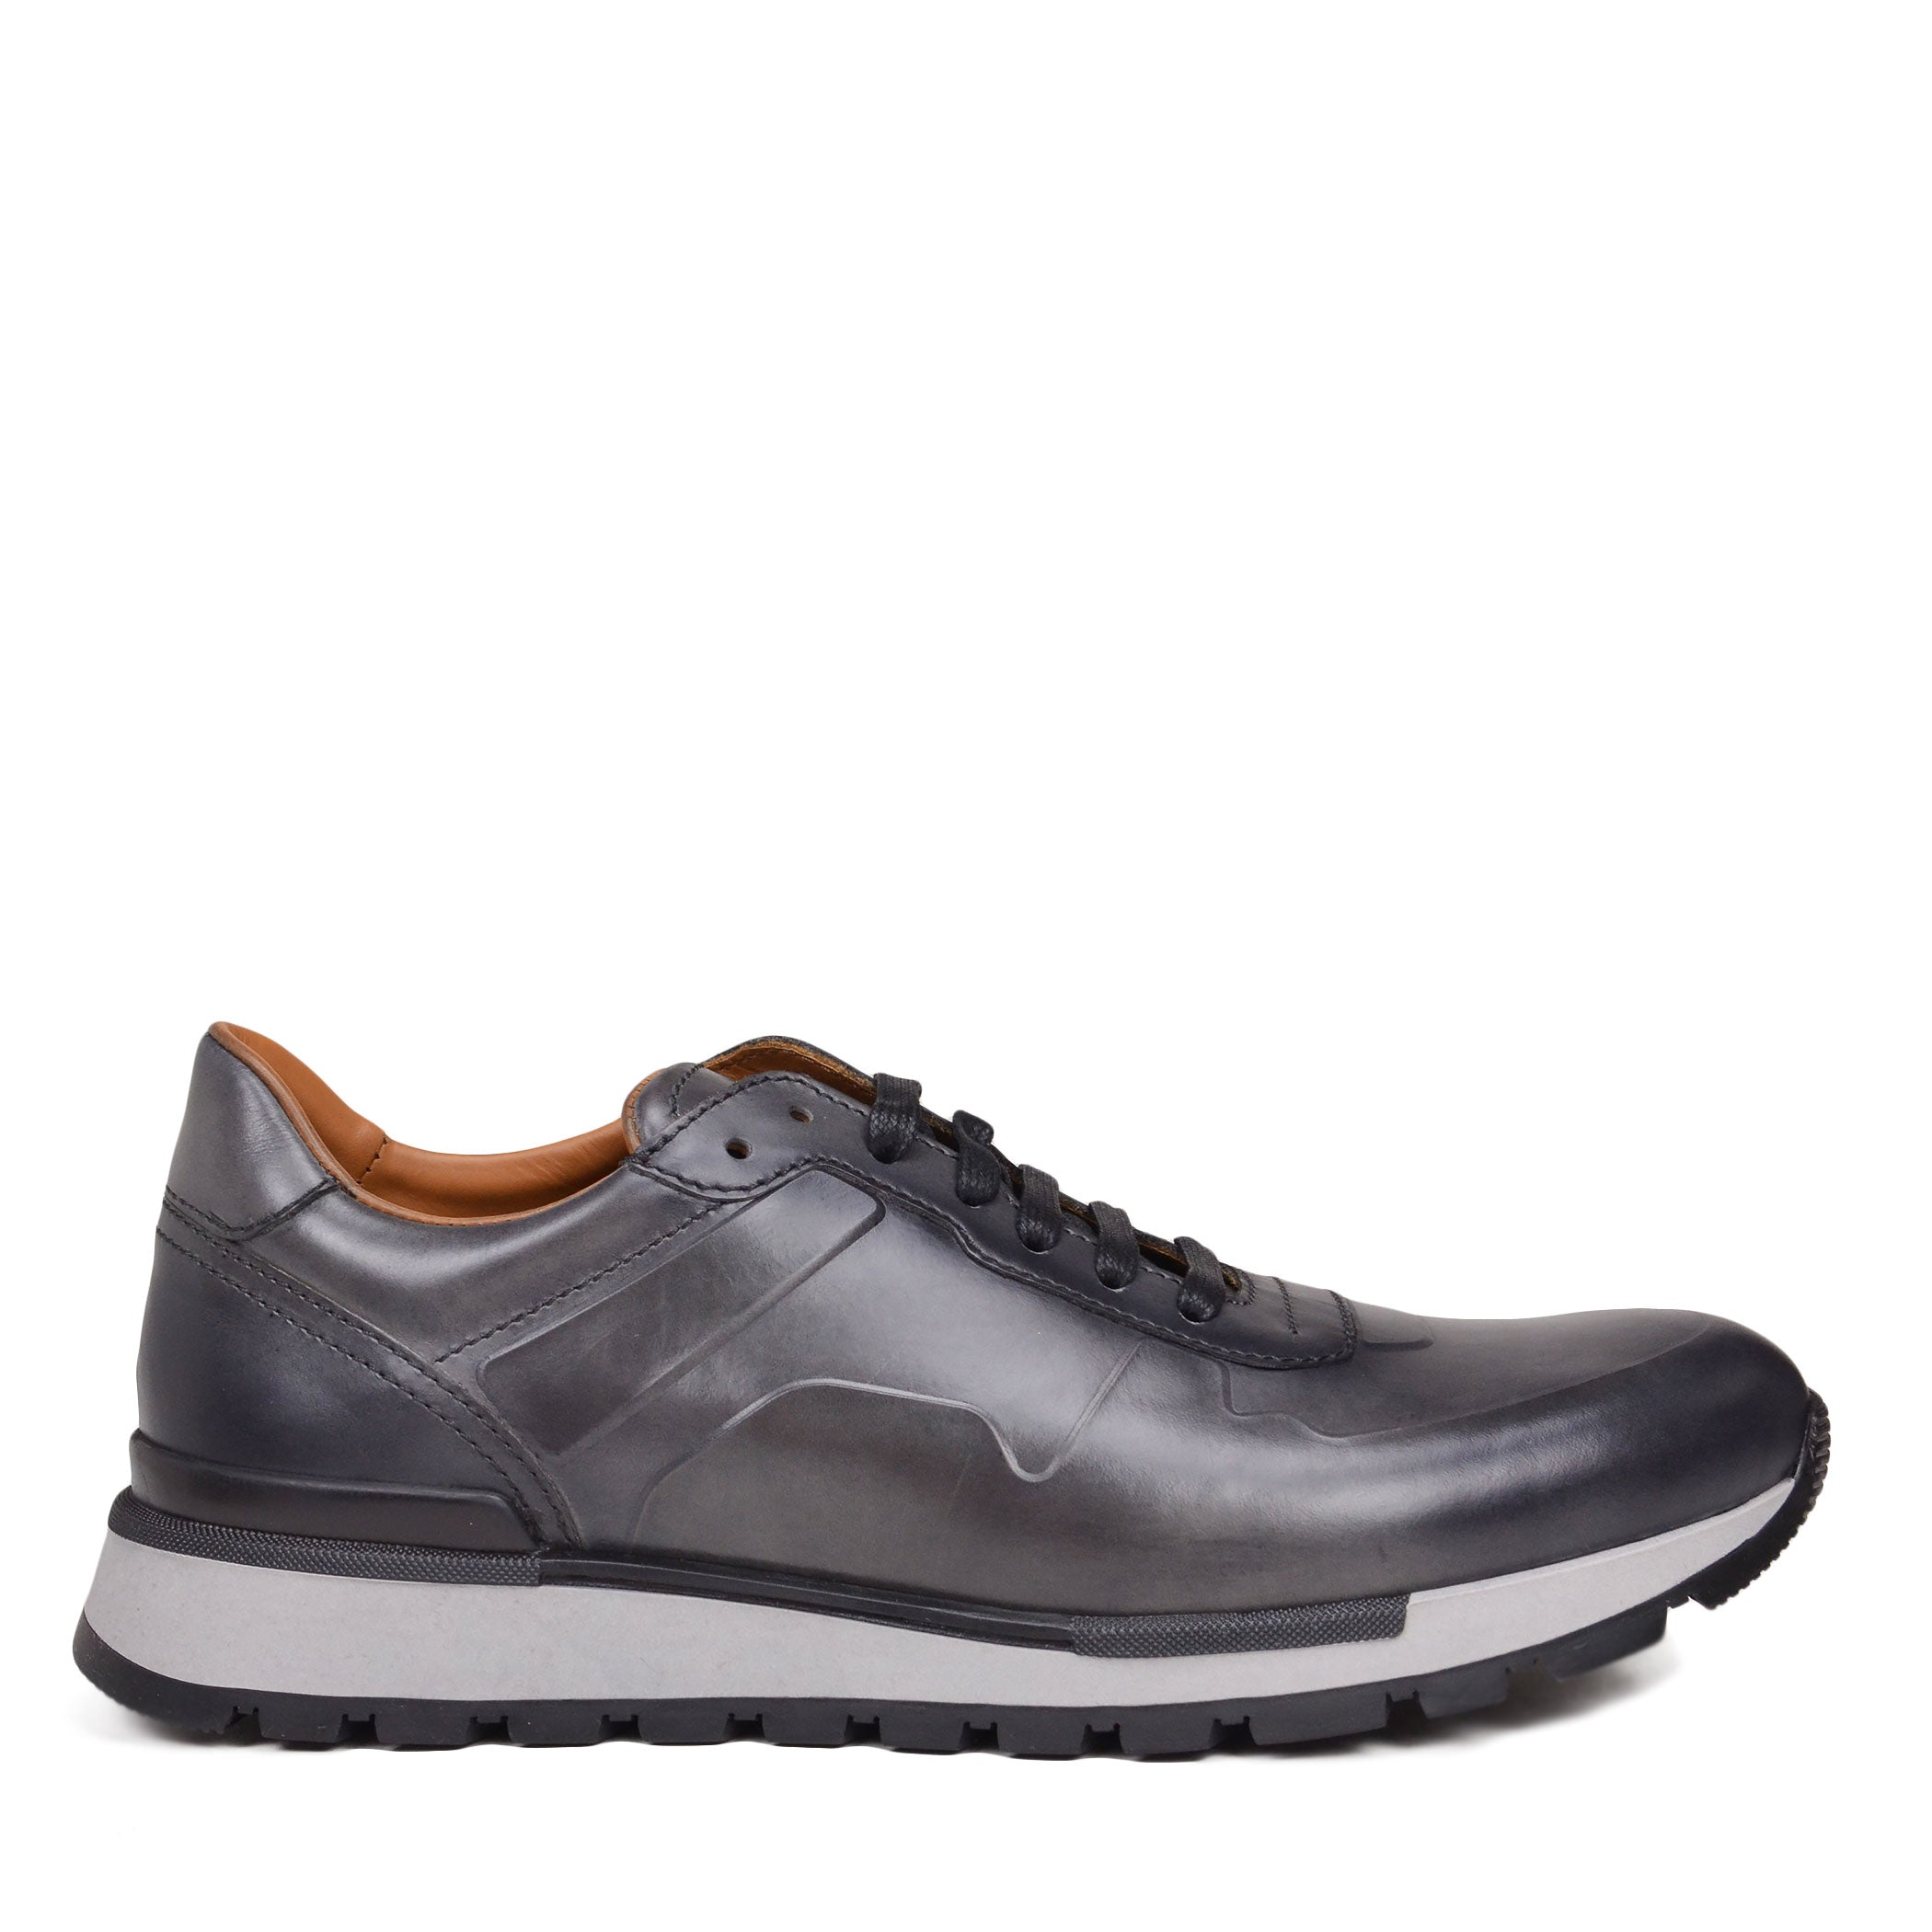 20eca6258d bm600297-01g___davio-hand-burnished-leather-sneaker-grey -leather___side.jpg?v=1539293032